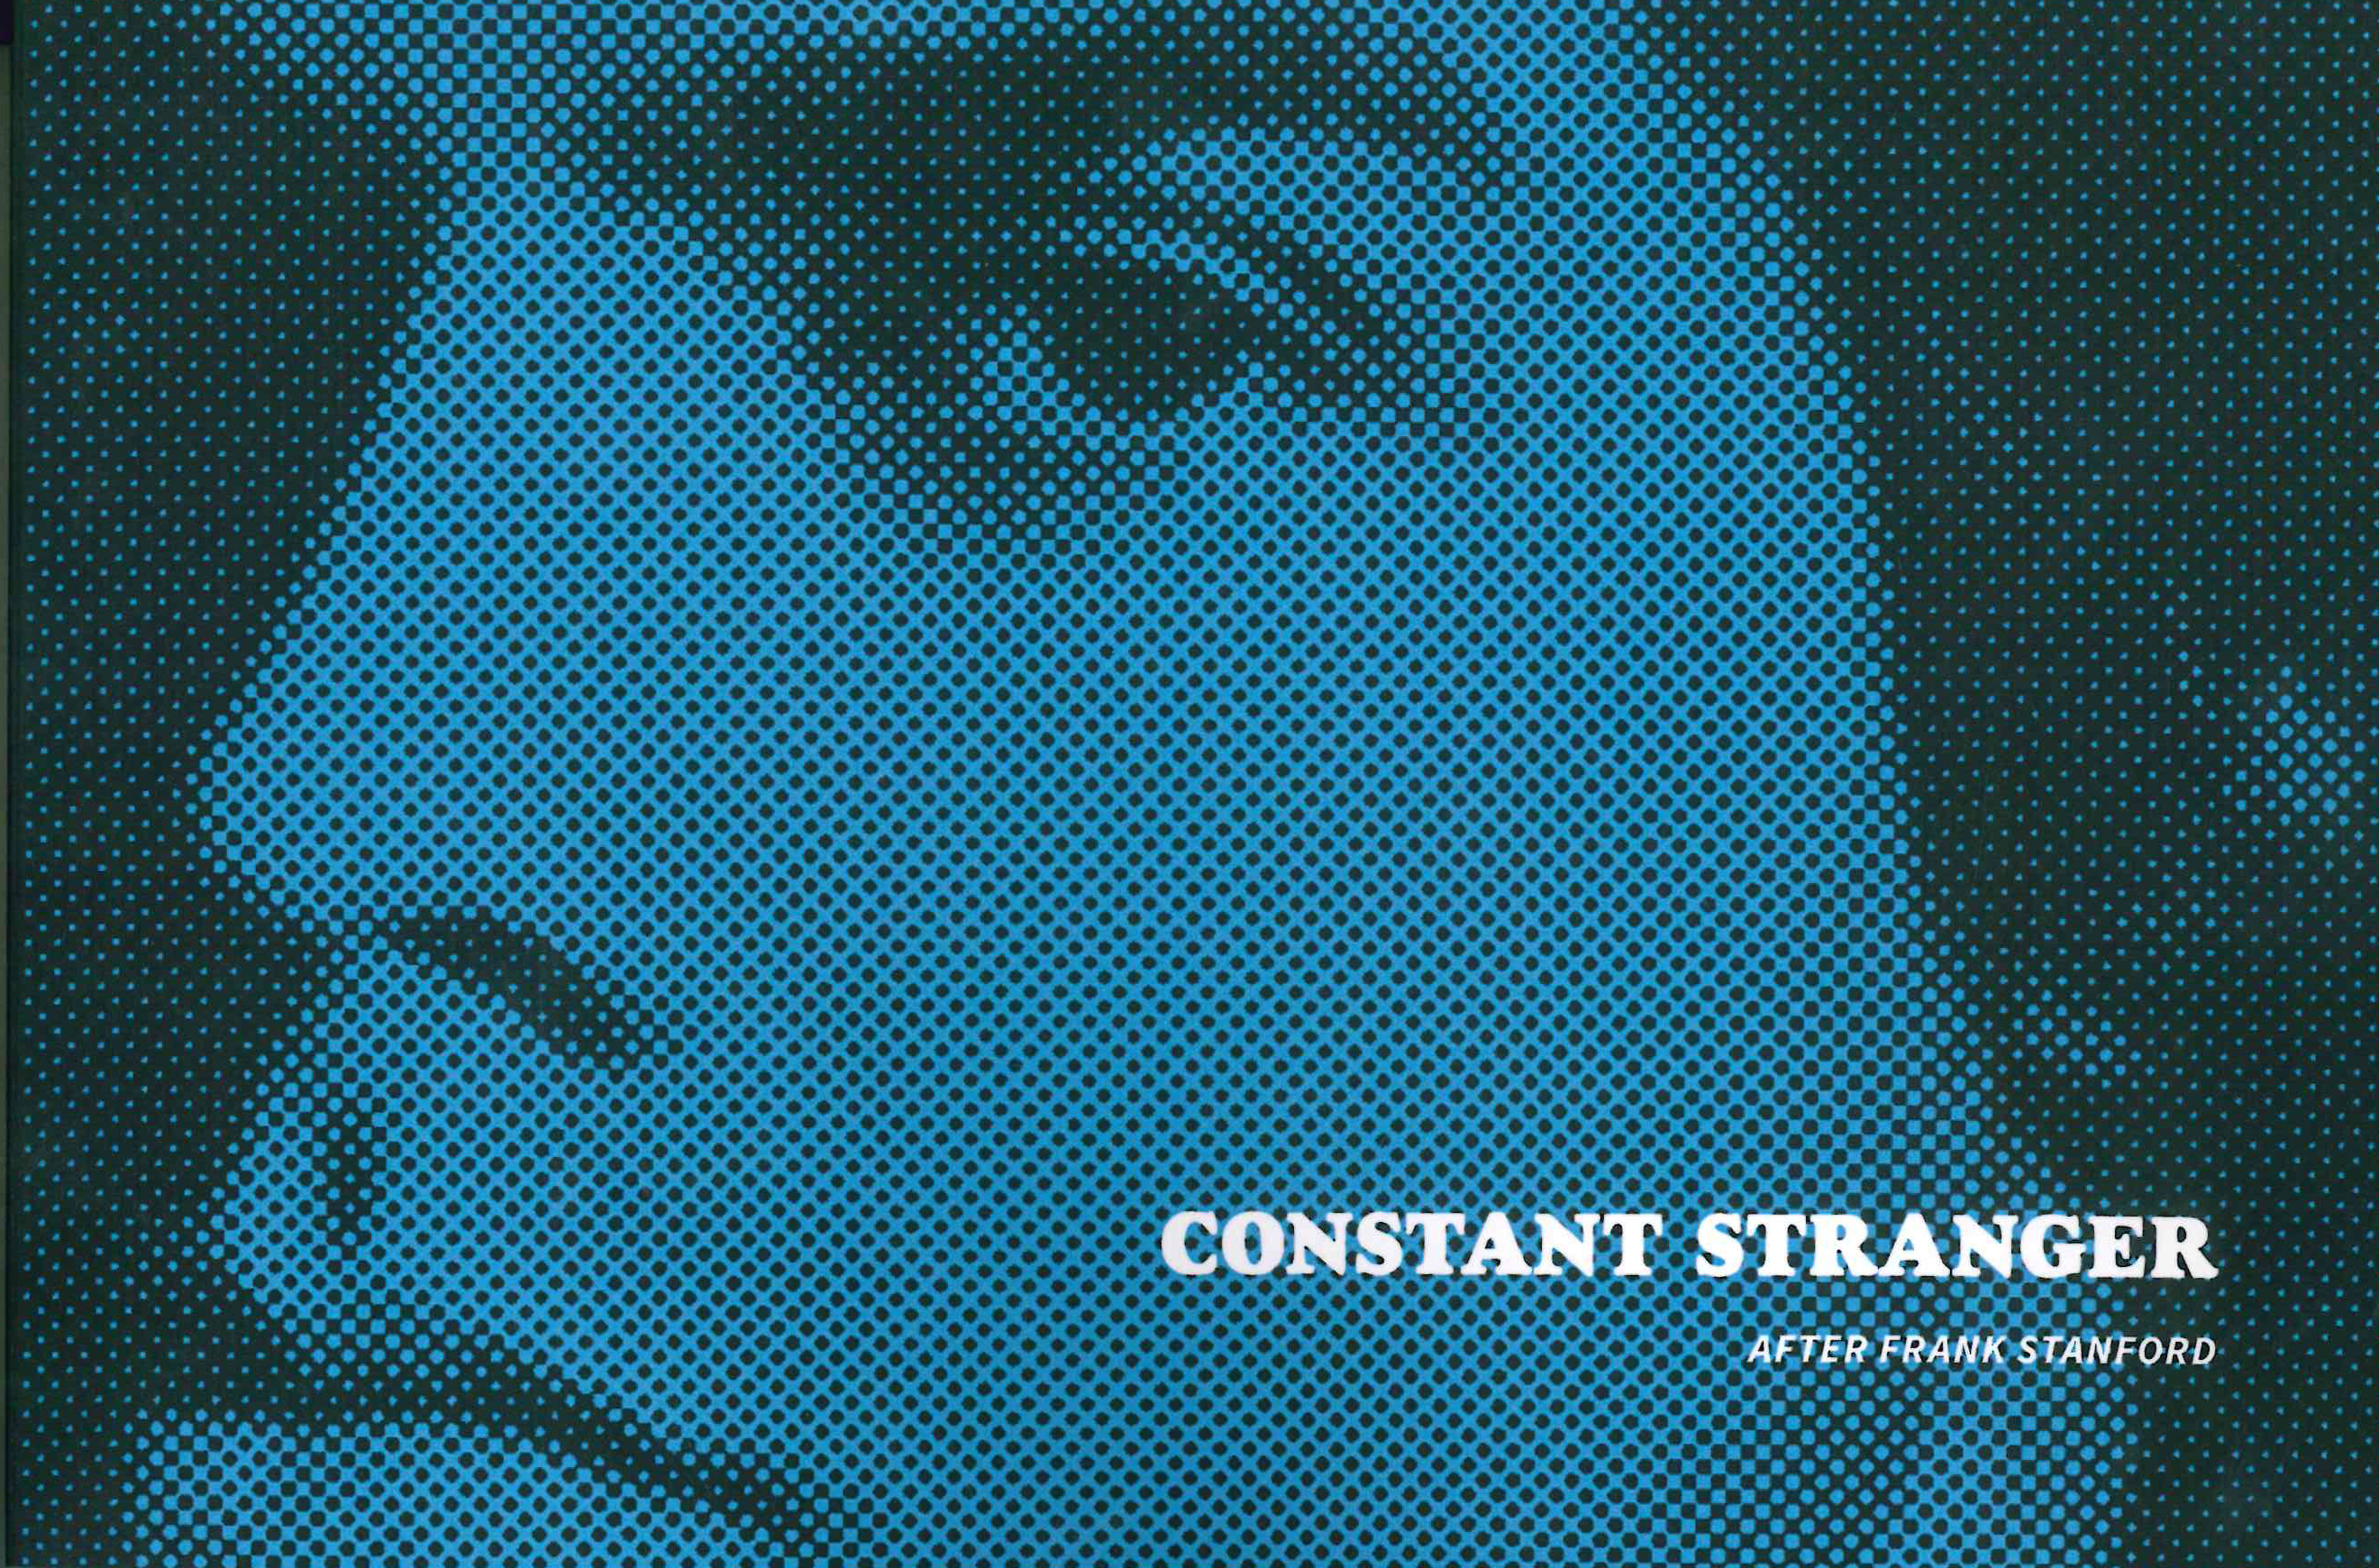 Constant Stranger: After Frank Stanford